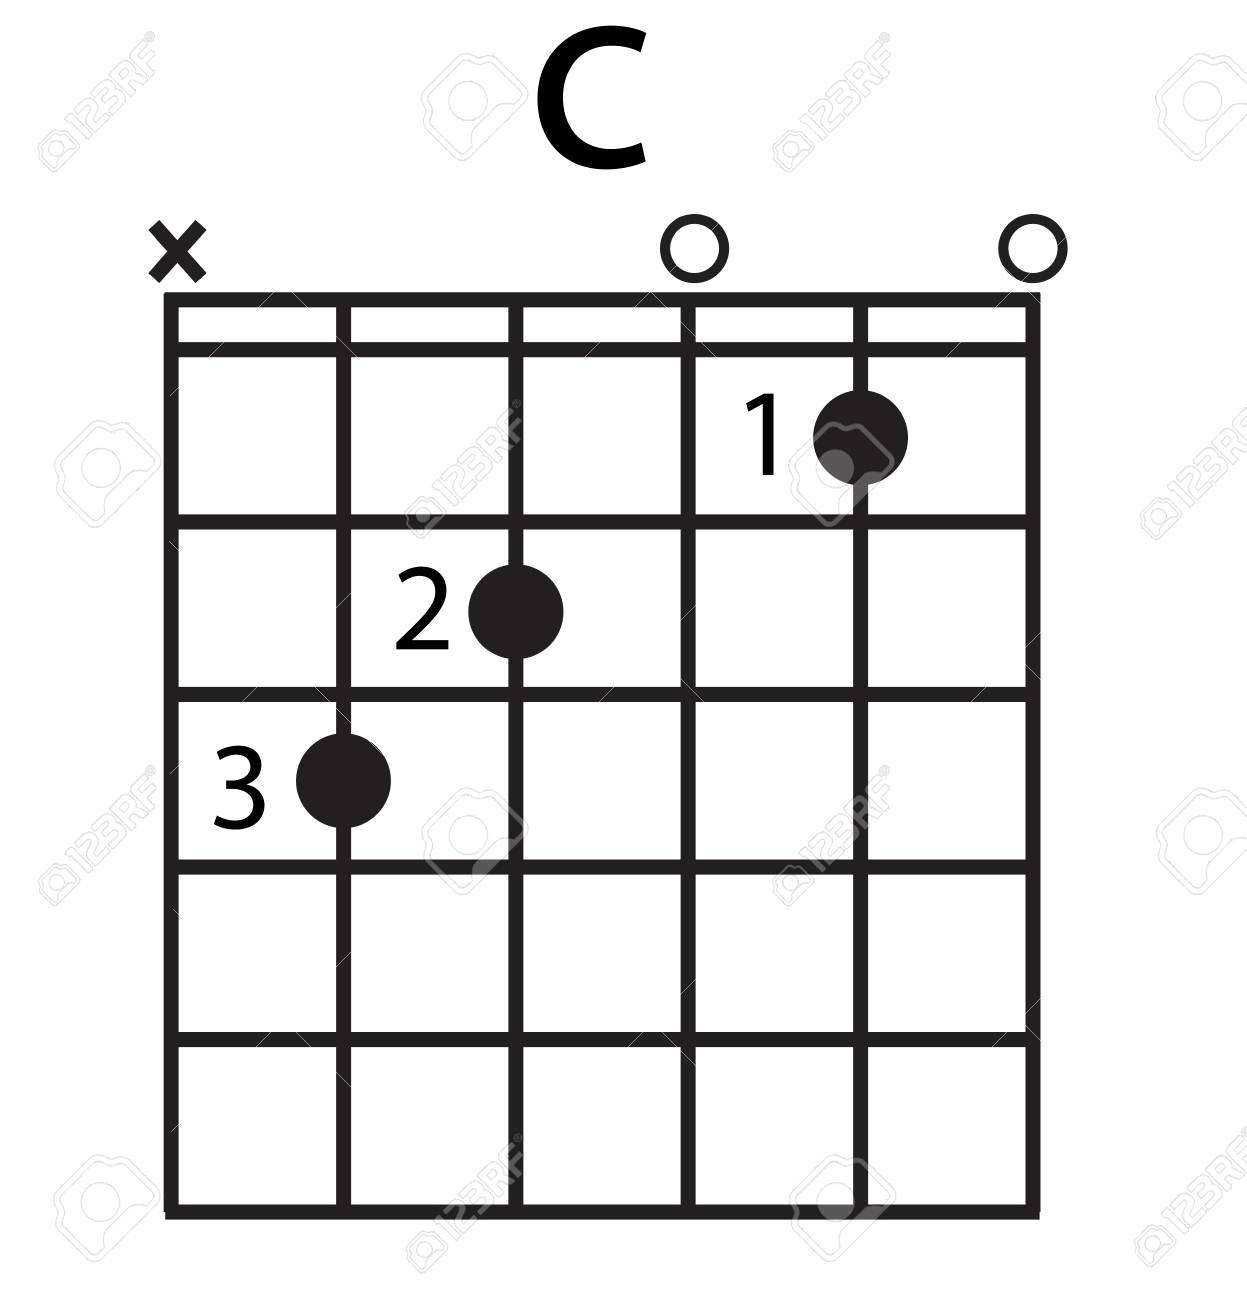 hight resolution of c chord diagram on white background flat style finger chart icon for your web